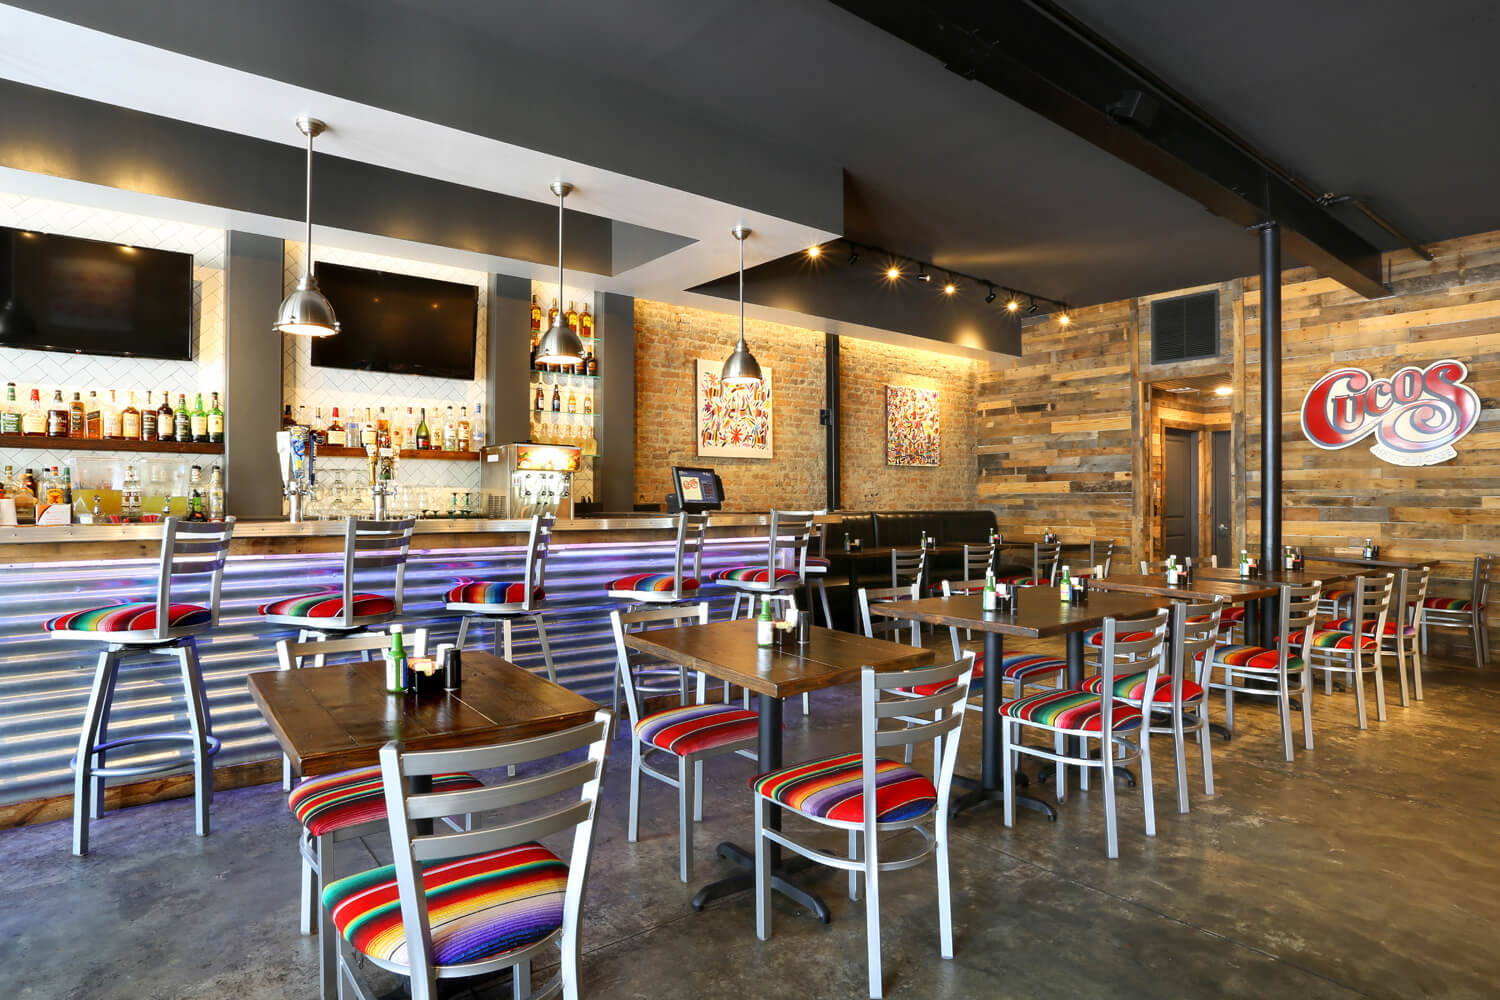 Cuco's Mexican Café Restaurant Designed by Foshee Architecture – View of Seating Area